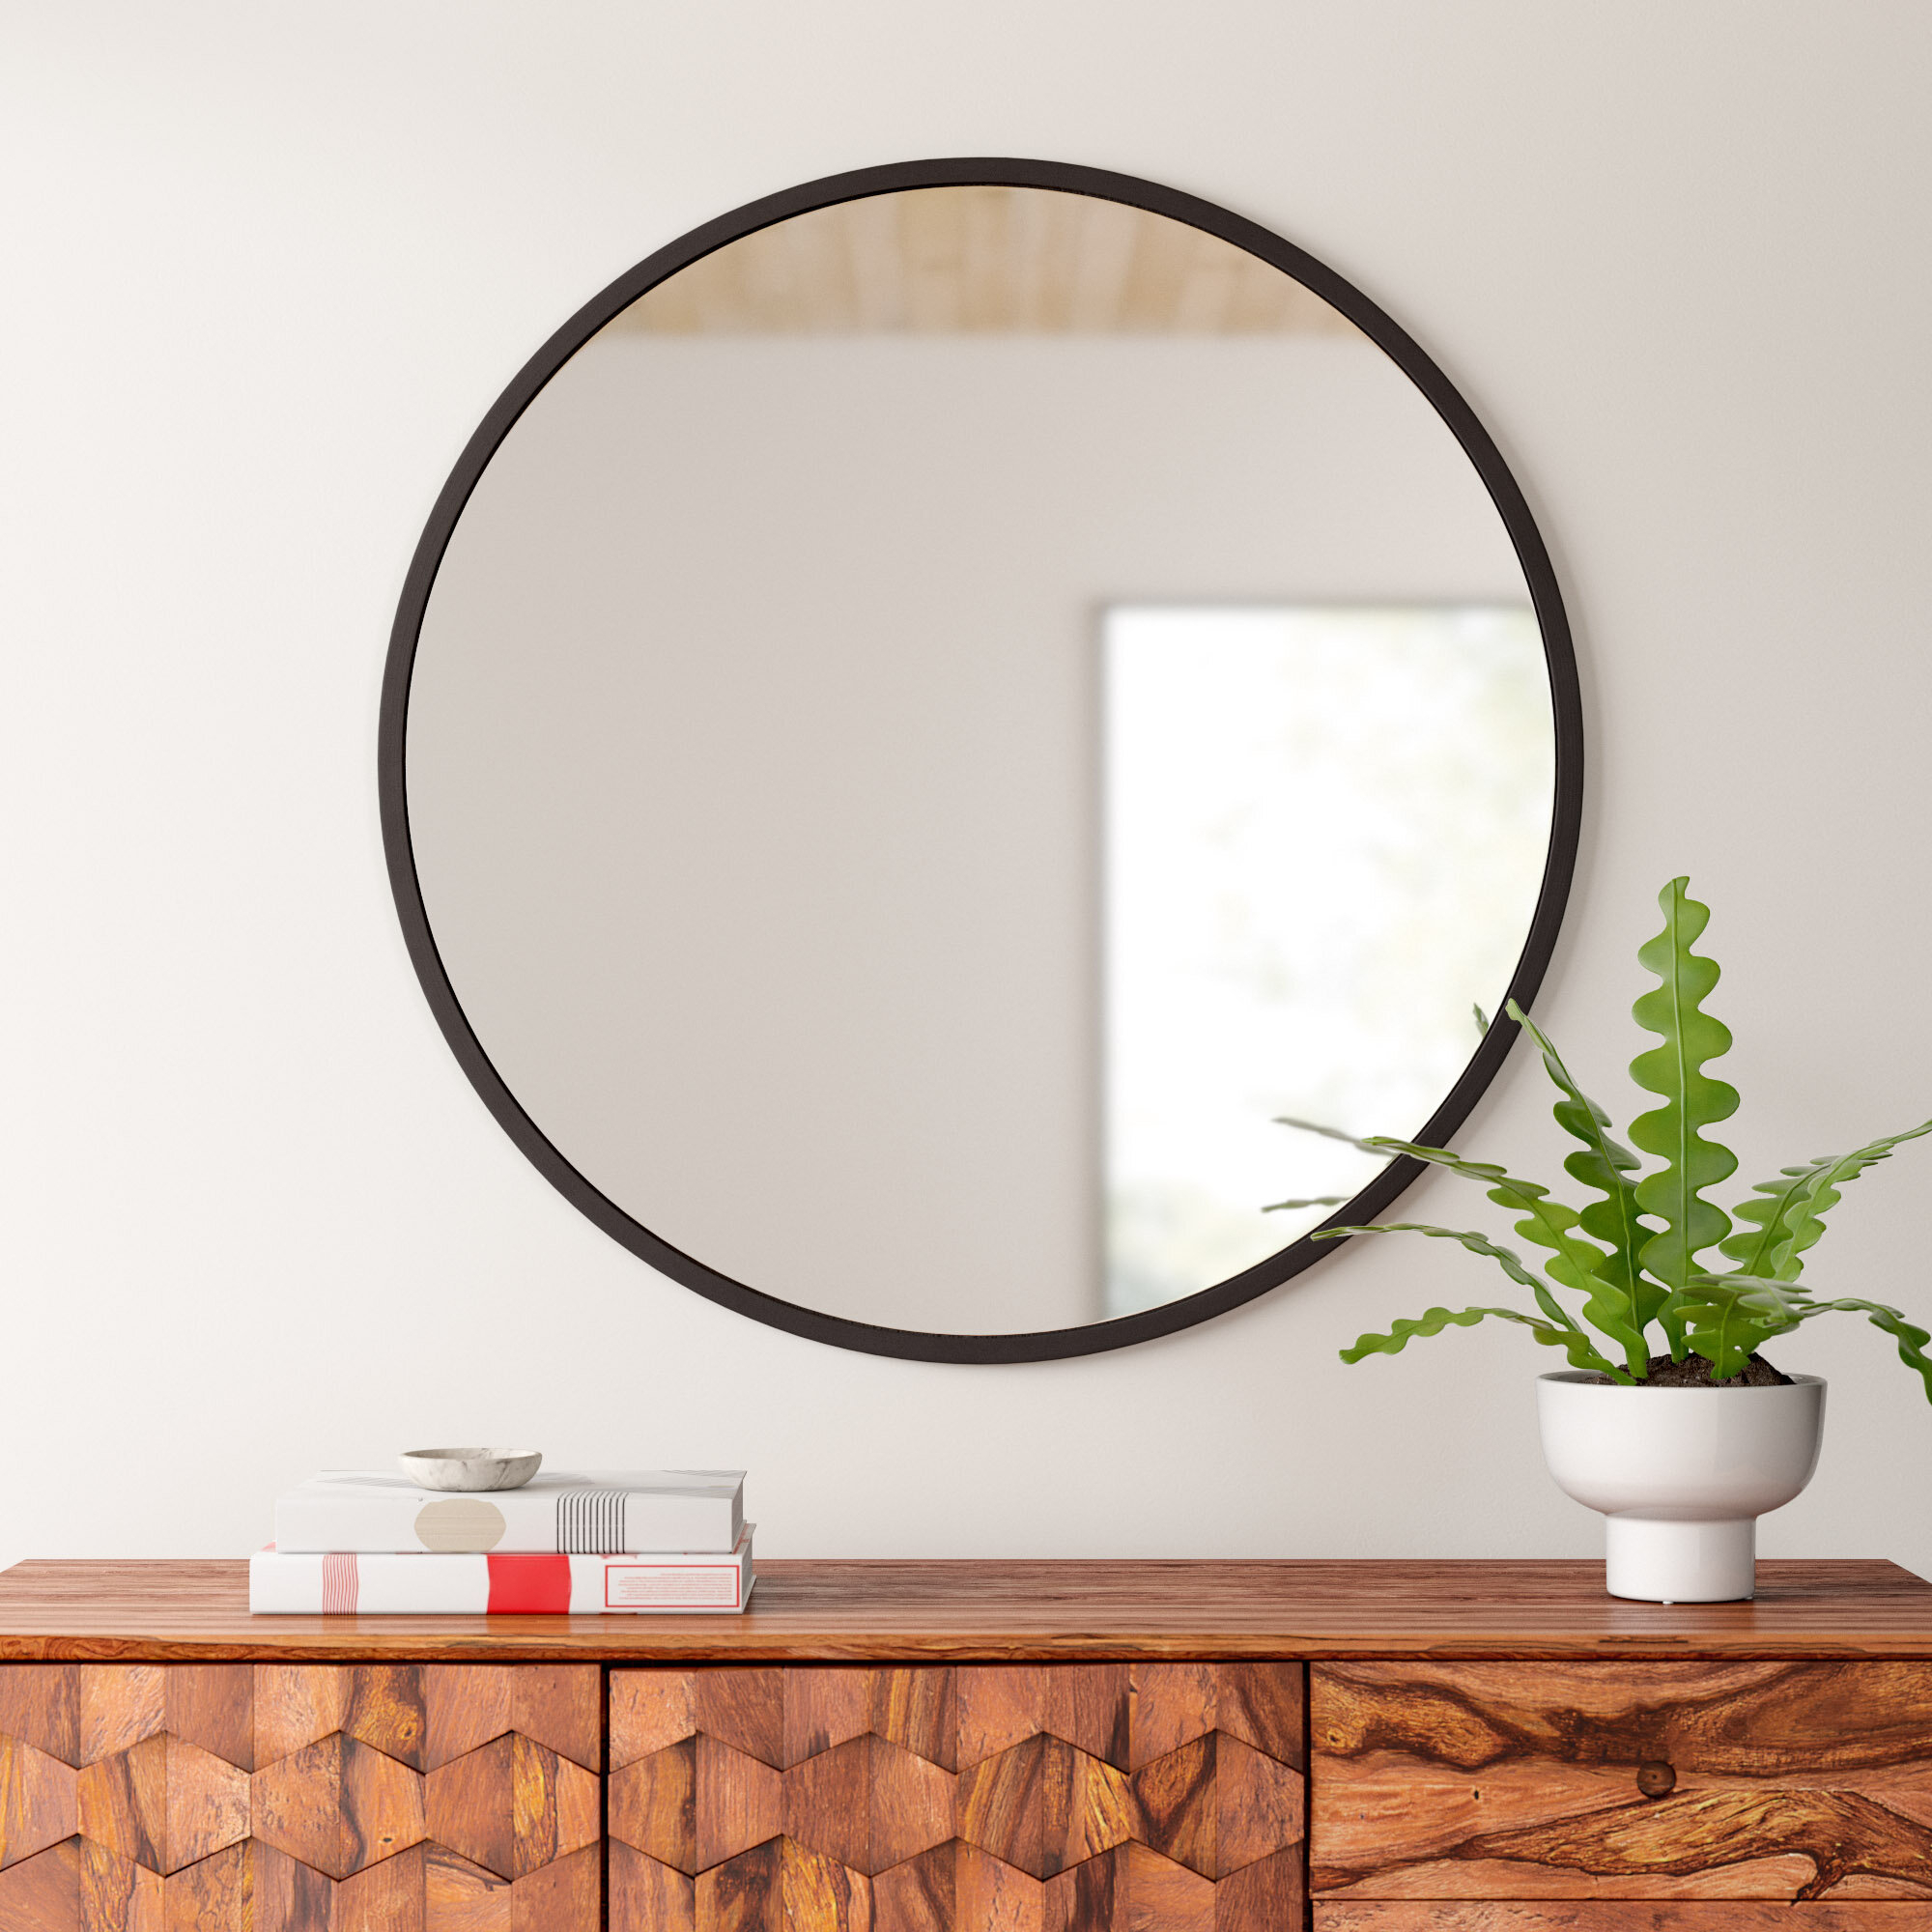 Umbra Hub Modern And Contemporary Accent Mirror Regarding Loftis Modern & Contemporary Accent Wall Mirrors (View 10 of 20)